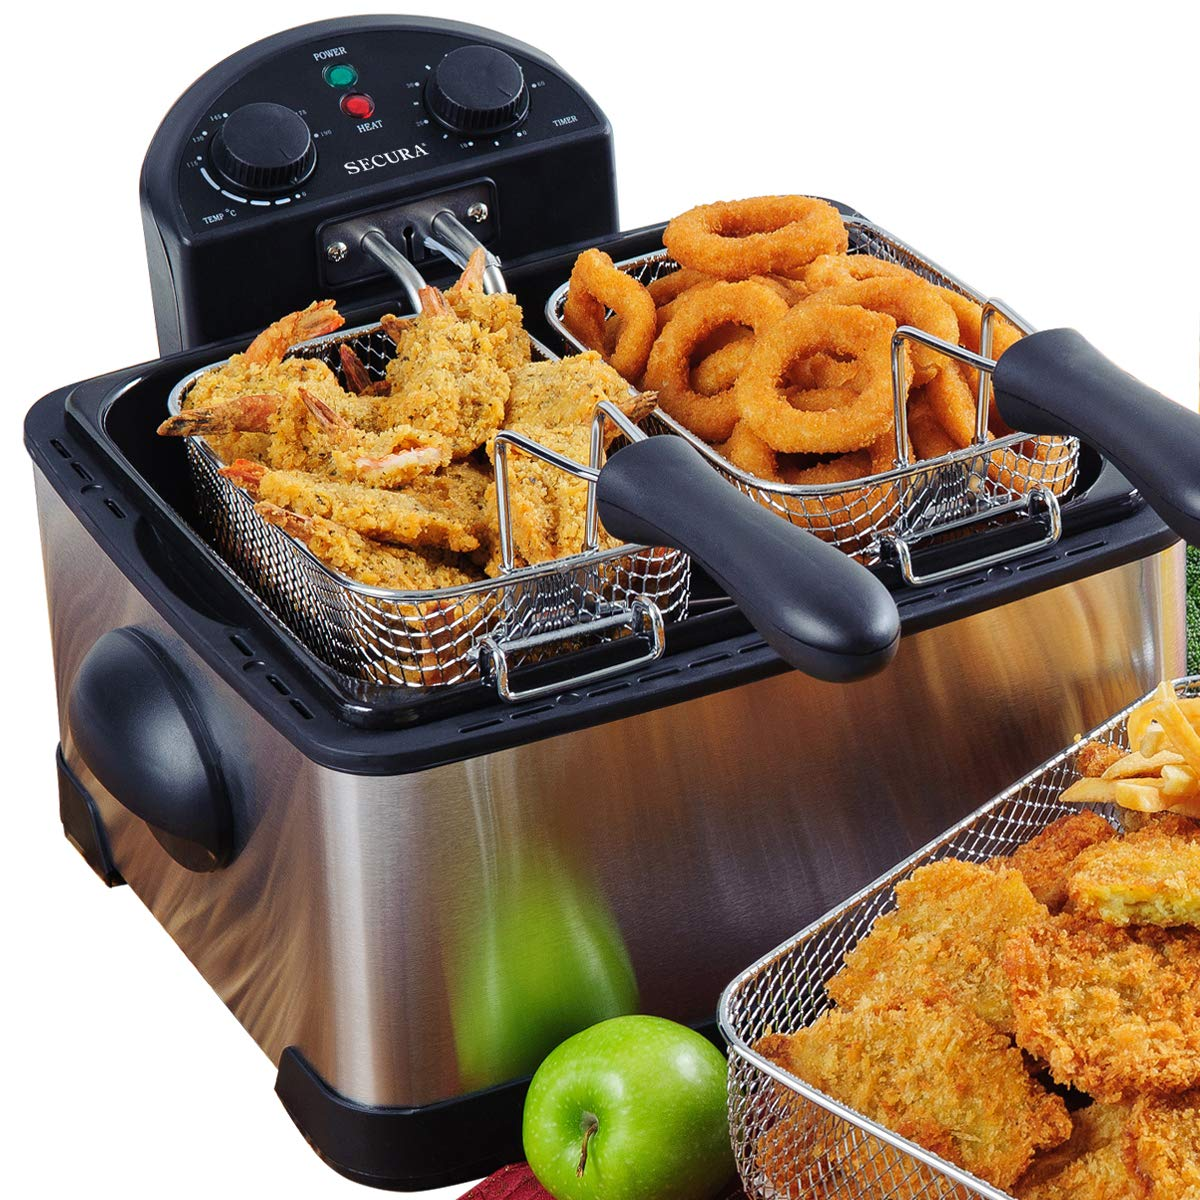 Secura 1700-Watt Stainless-Steel Triple Basket Electric Deep Fryer with Timer Free Extra Odor Filter, 4L/17-Cup by Secura